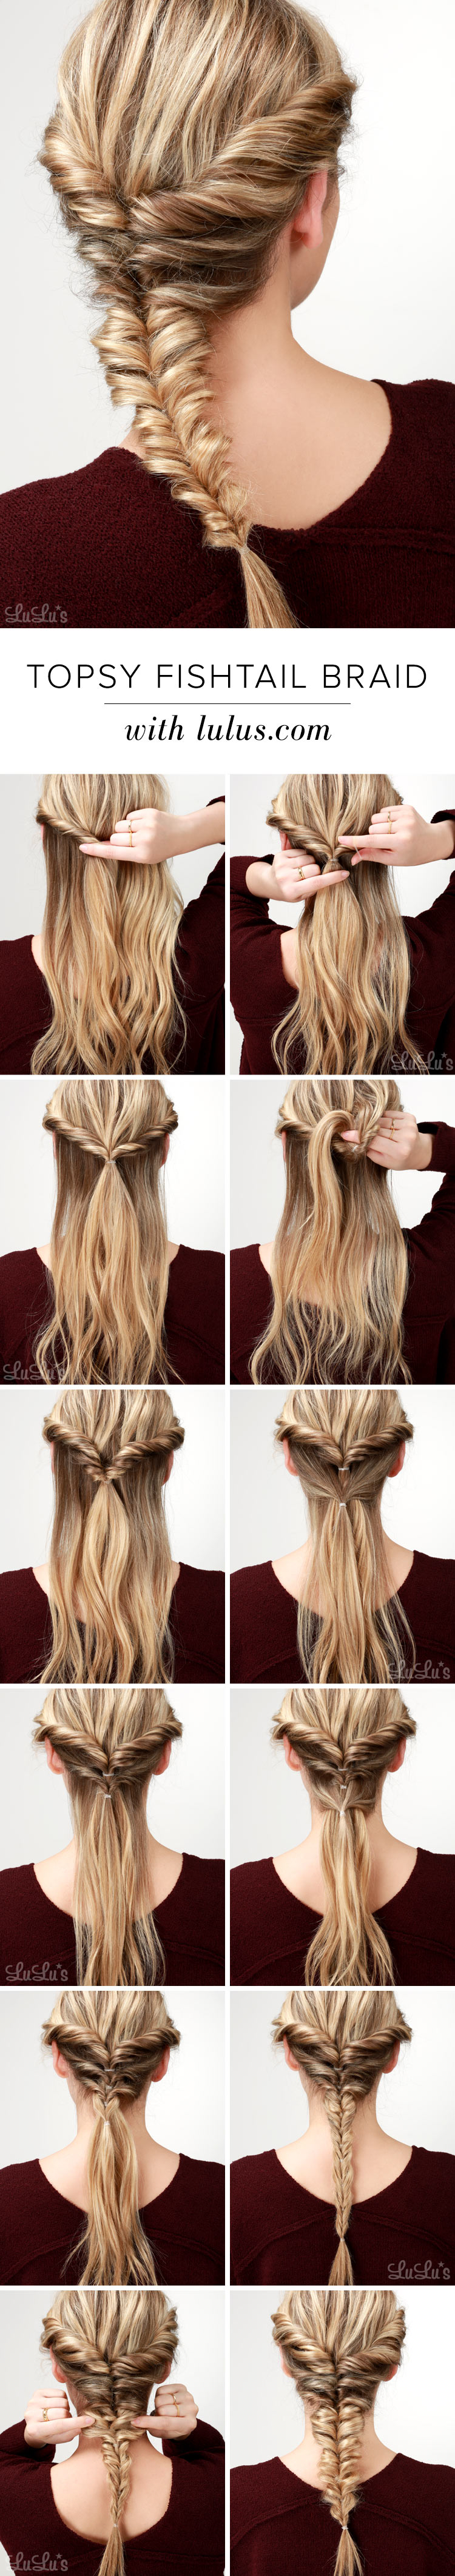 Lulus How To Topsy Fishtail Braid Tutorial Fashion Blog